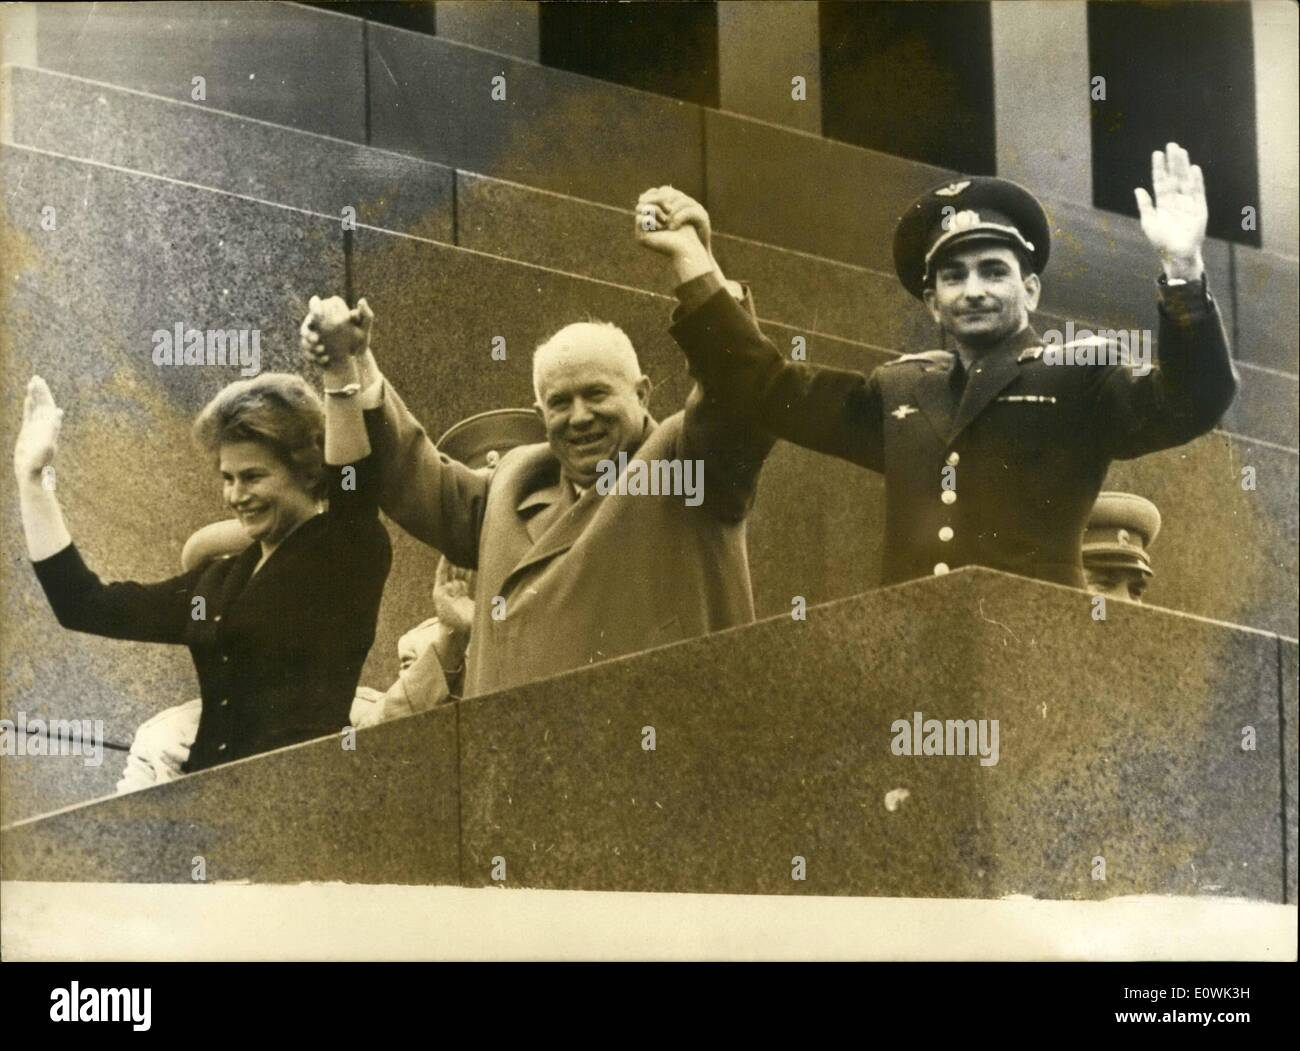 Jun. 06, 1963 - Moscow: N.S.Khrushchev and Cosmonauts V.Tereshkova and Bykoysly Deen here on the V.I. Lenin mausoleum during the rally held to greet the two Cosmonauts in the Red Square here on June 22. - Stock Image